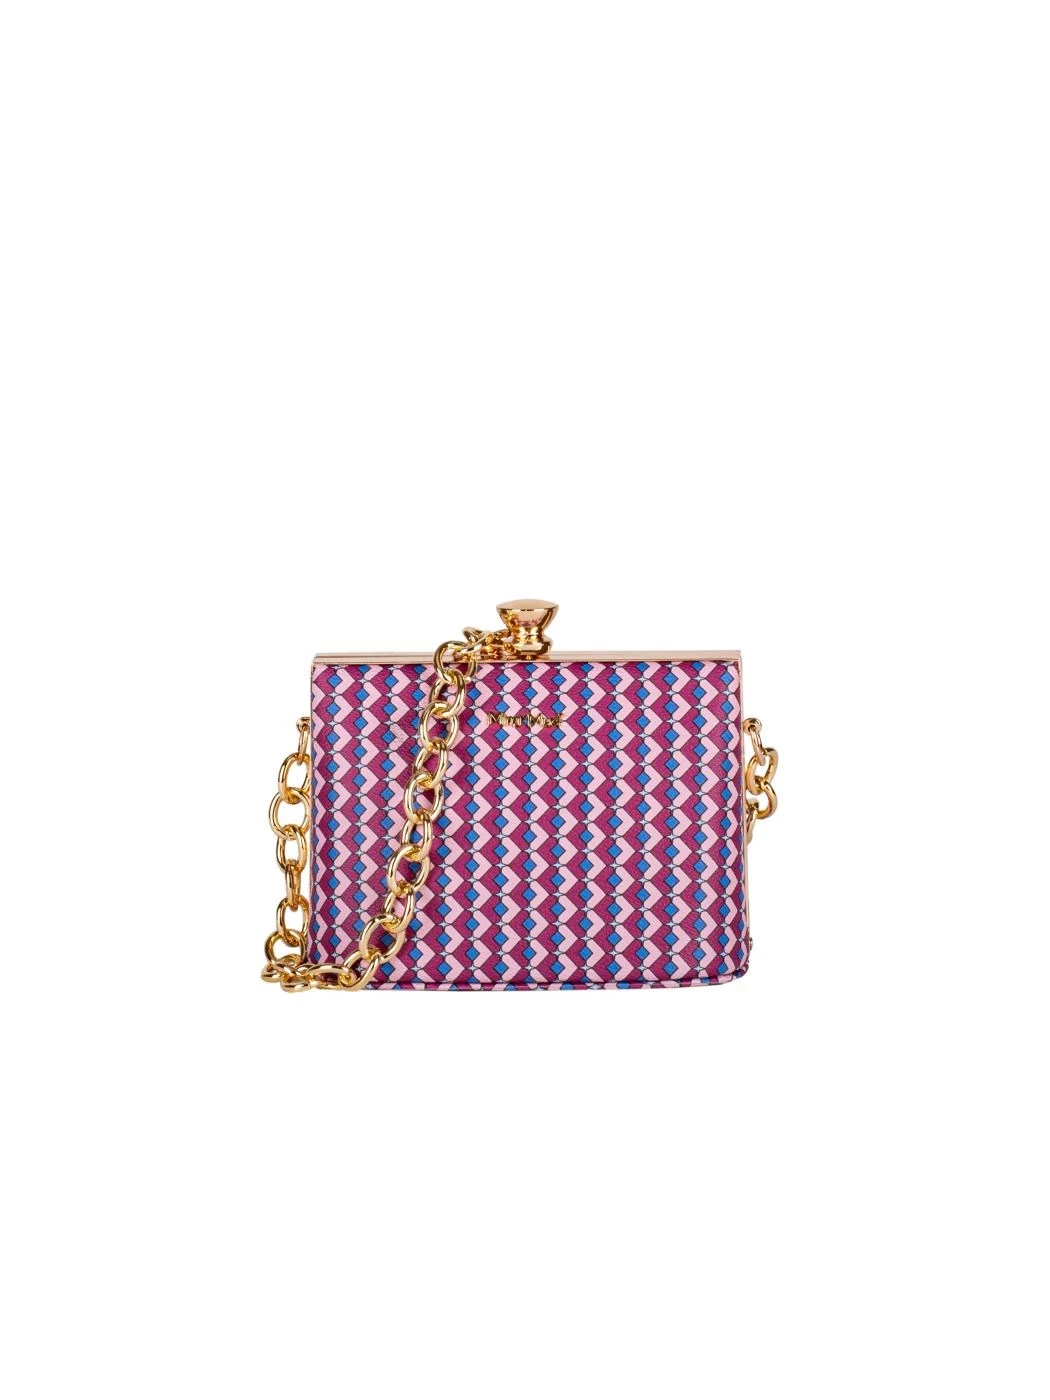 CLUTCH WITH PATTERNED CHAIN IN DIAMONDS